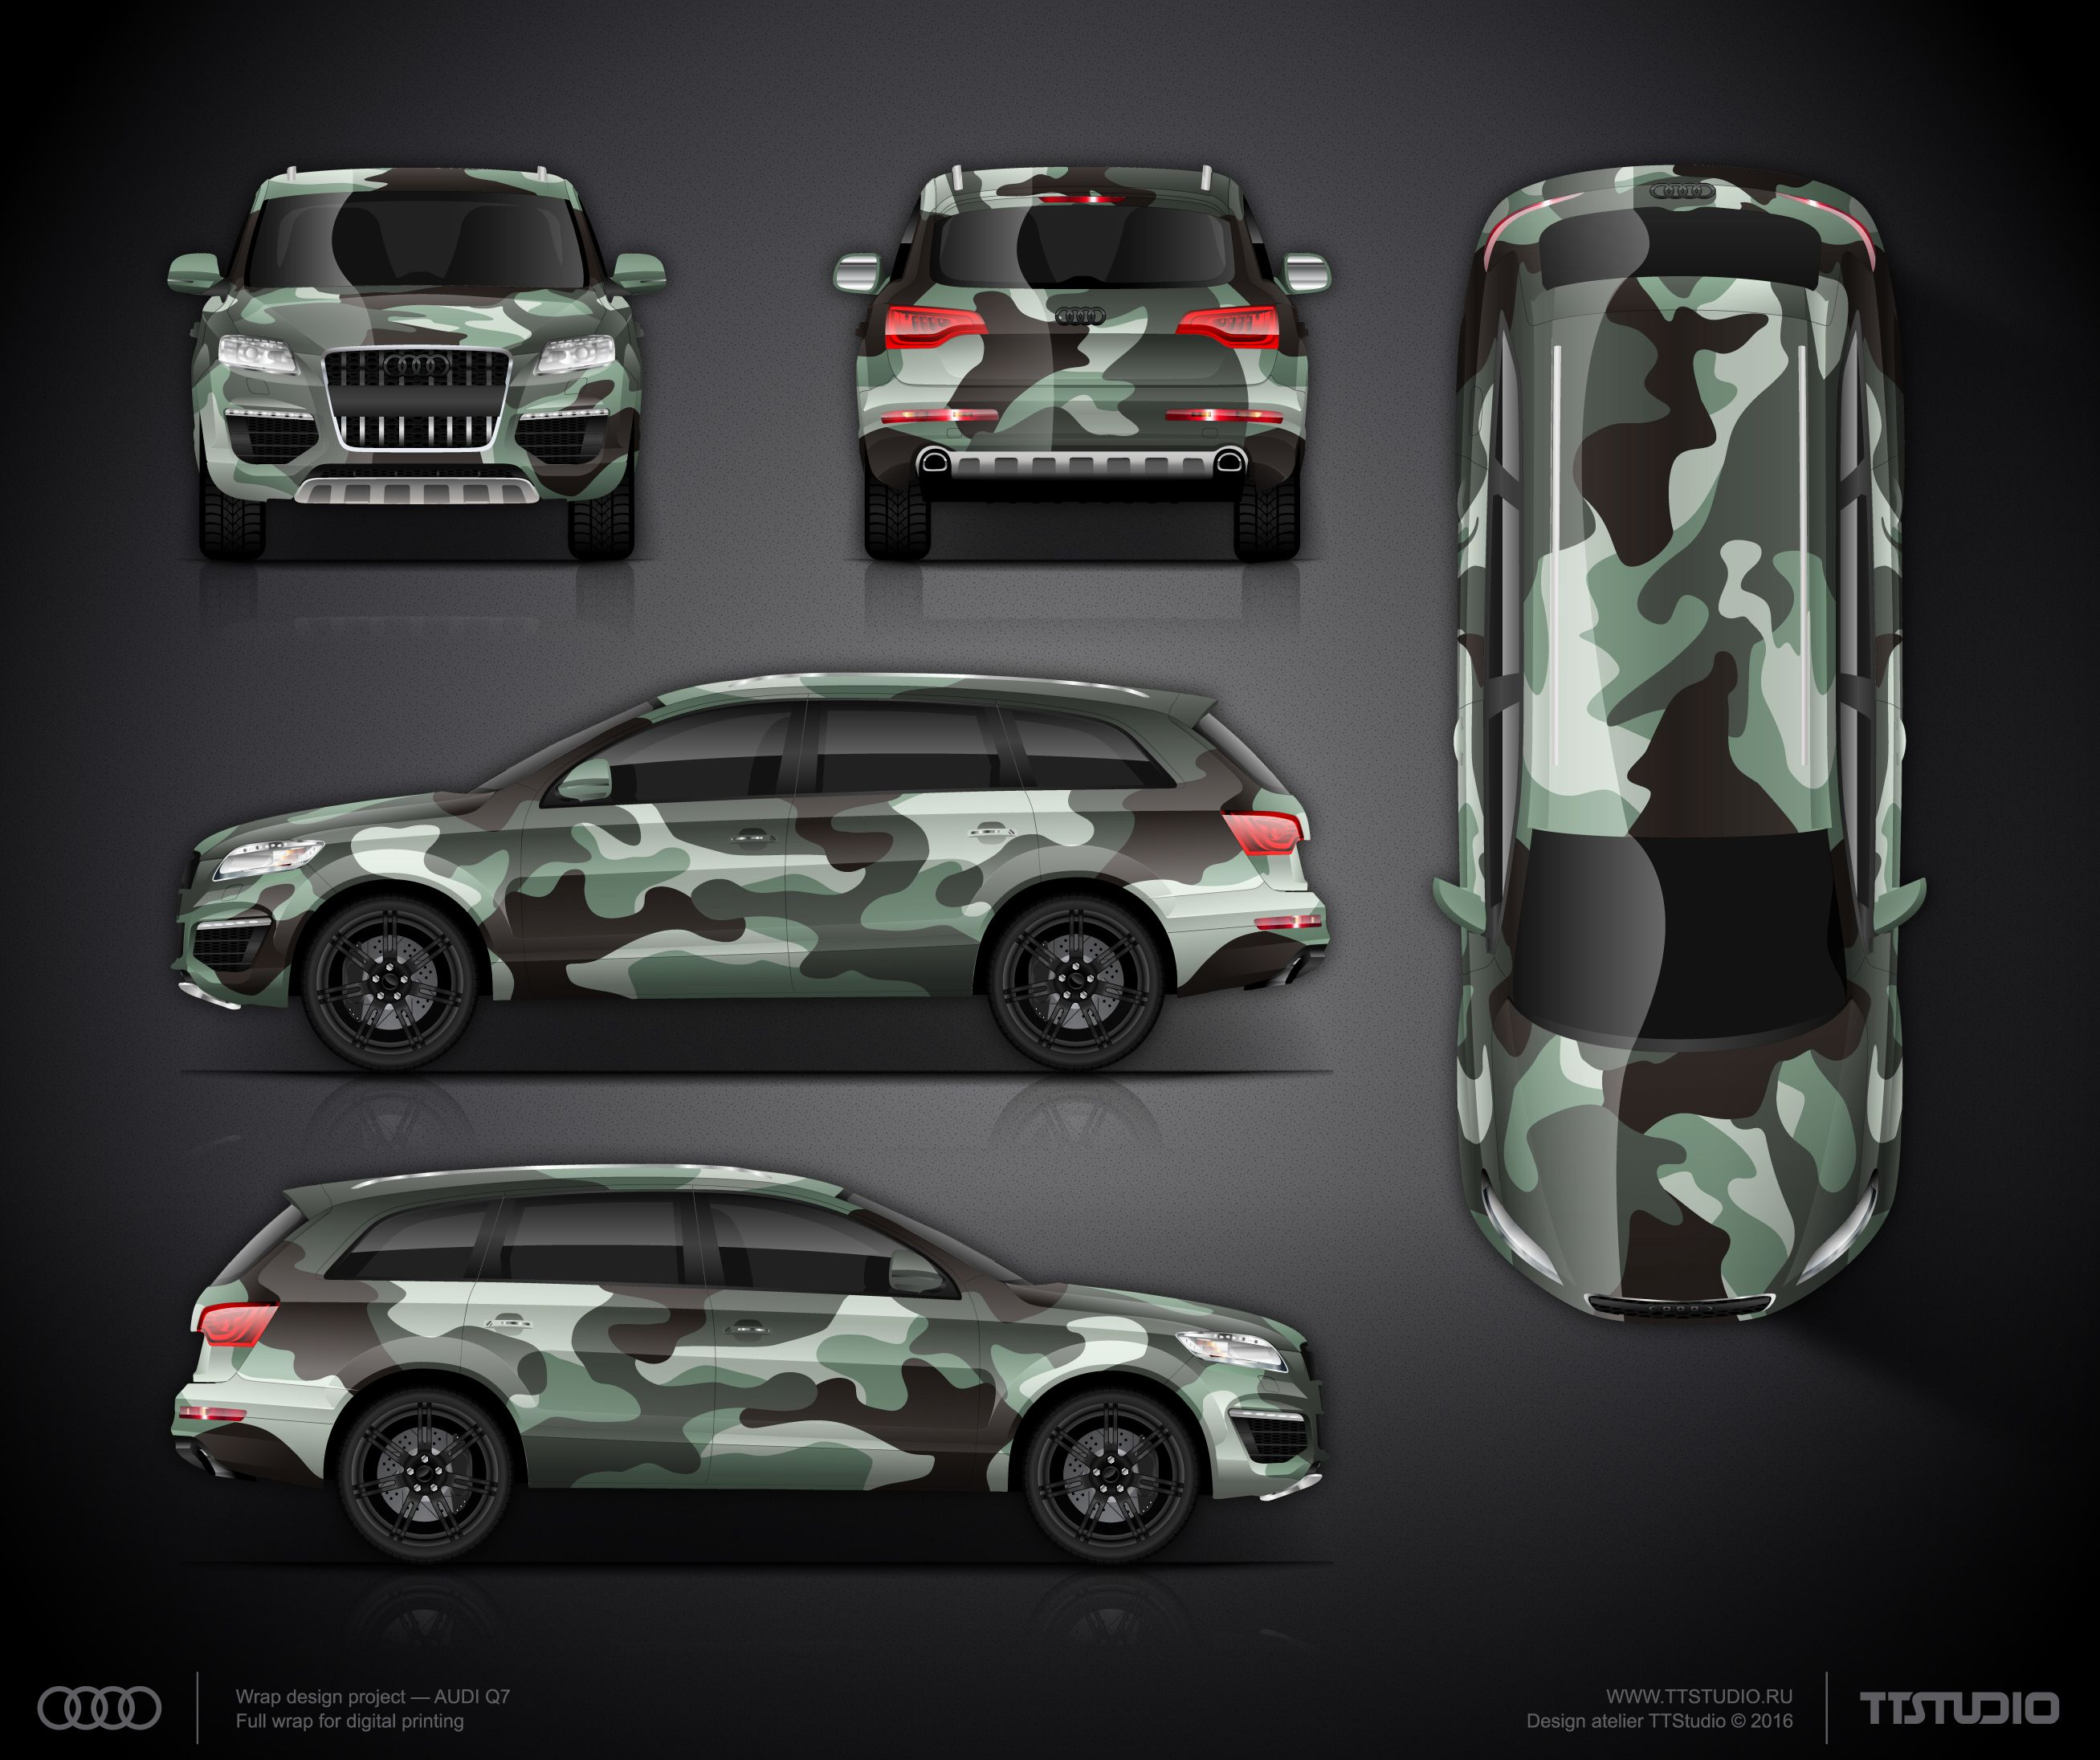 The approved camouflage wrap design for Audi Q7 Car wrap